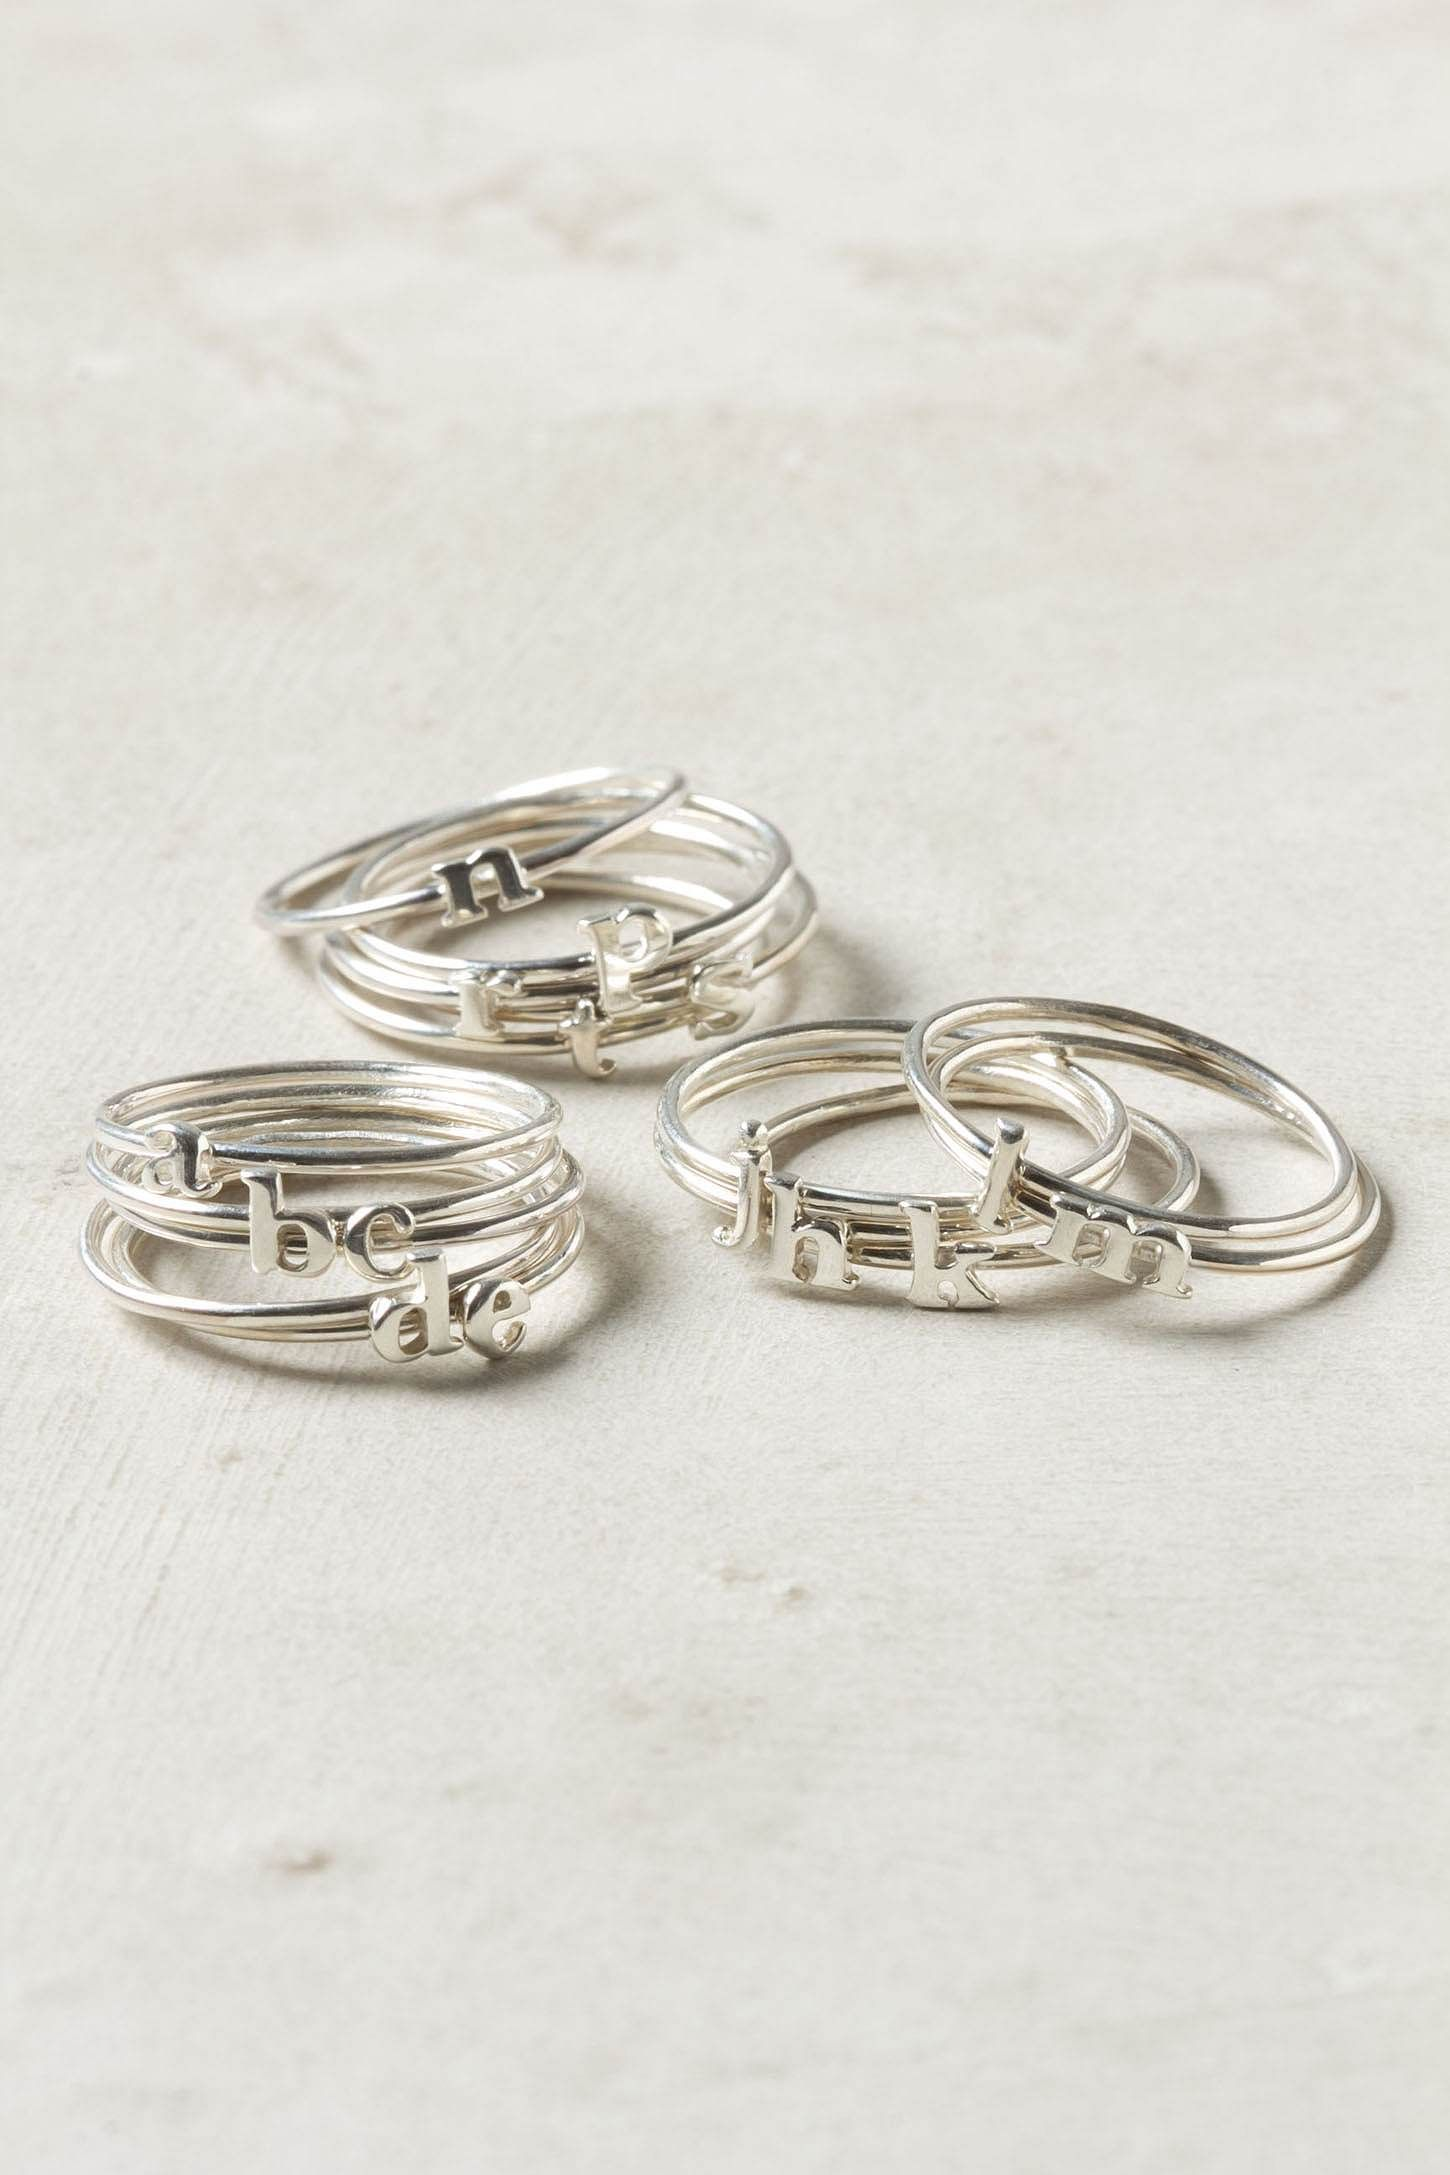 Wee Initial Ring - Anthropologie.com